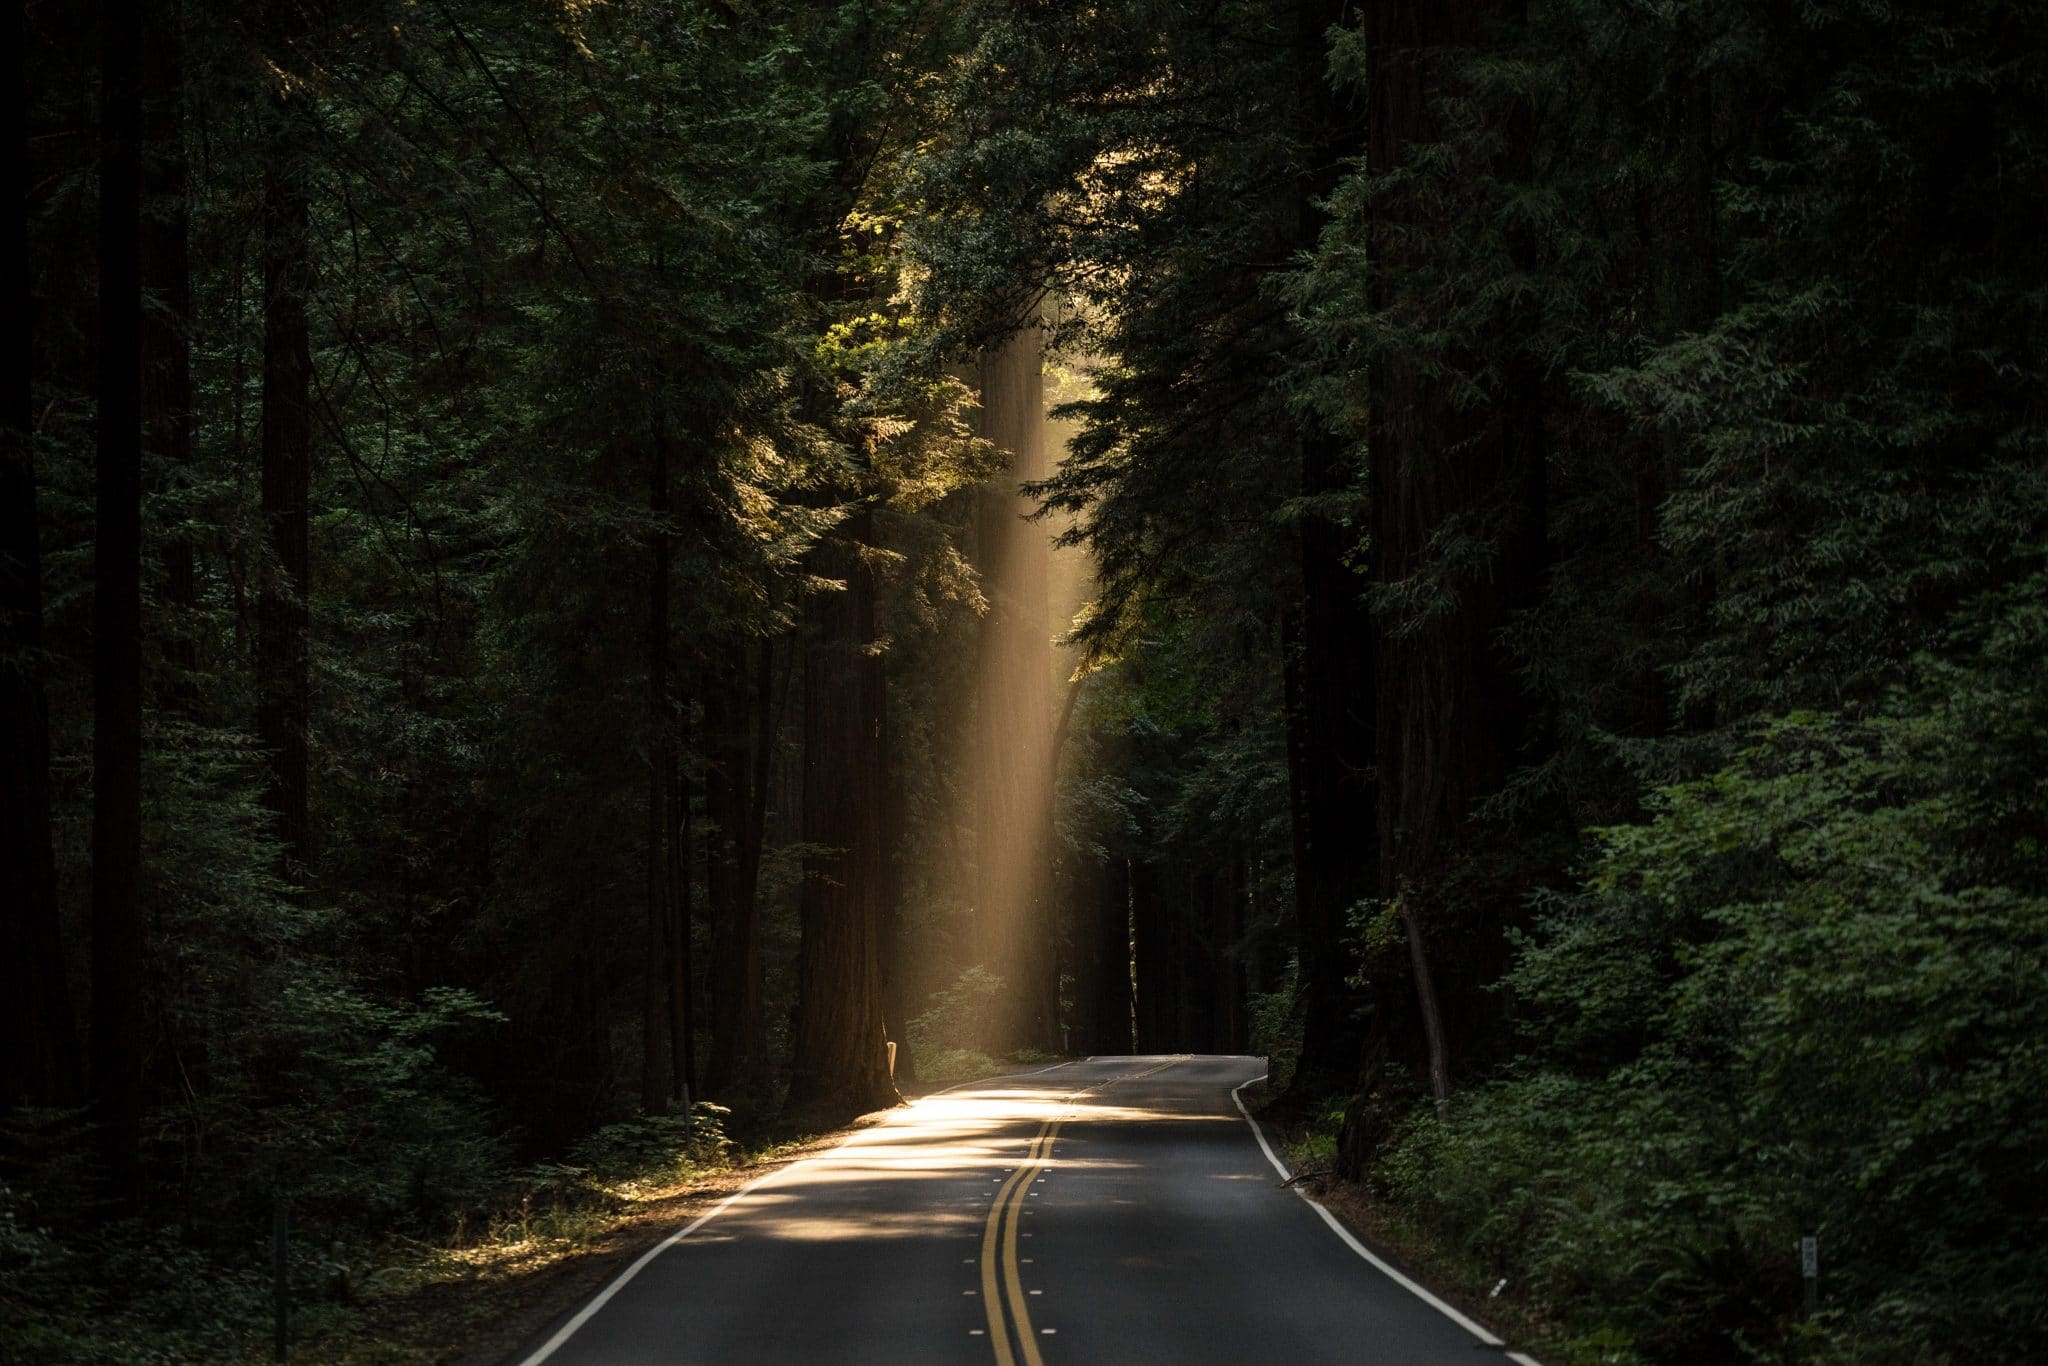 A ray of light shining down onto a dark road